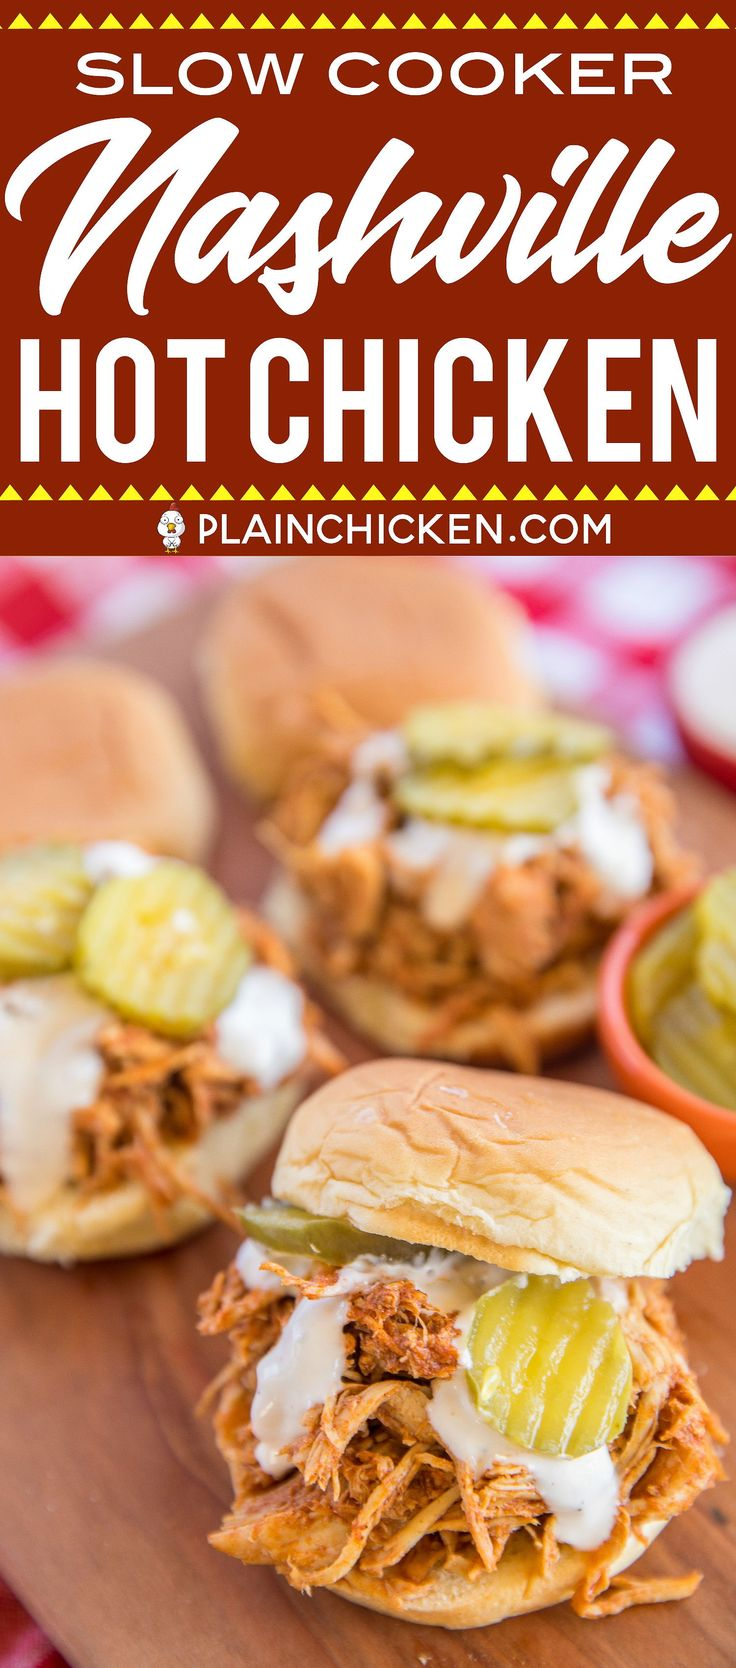 Slow Cooker Nashville Hot Chicken – adapted from the original Hattie B's Hot Chi…